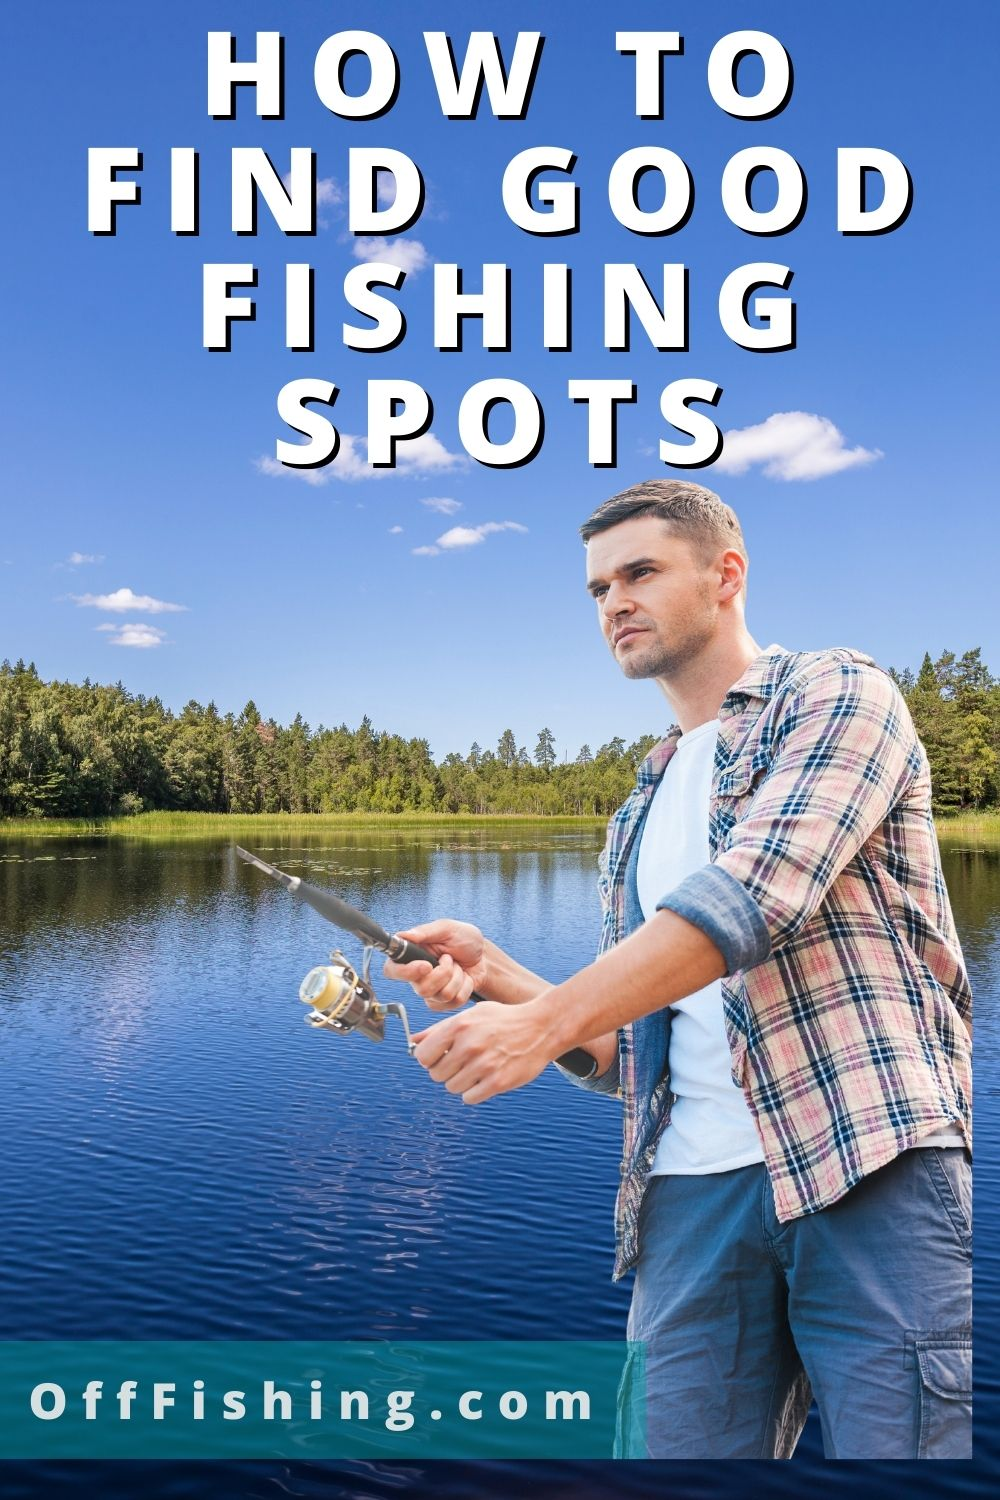 How To Find Good Fishing Spots Near You Pinterest pIN